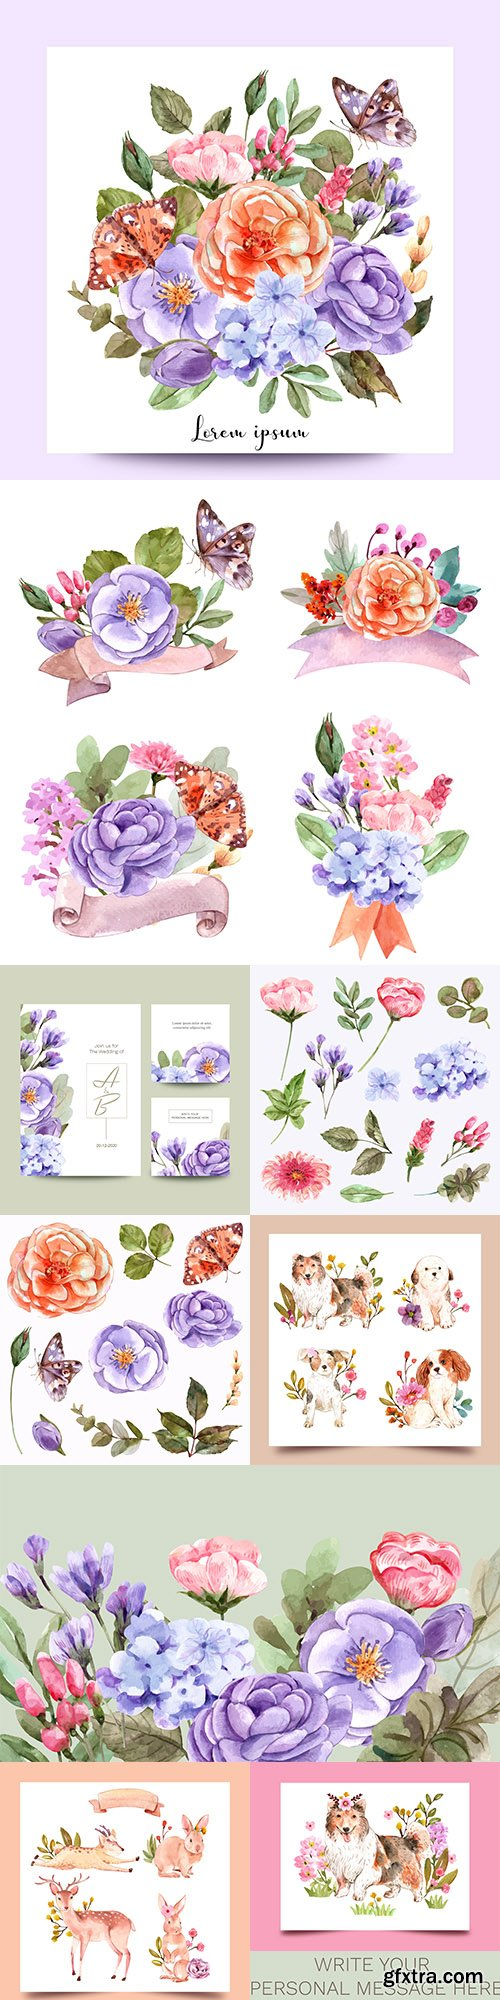 Watercolor flowers and animal set design creativity